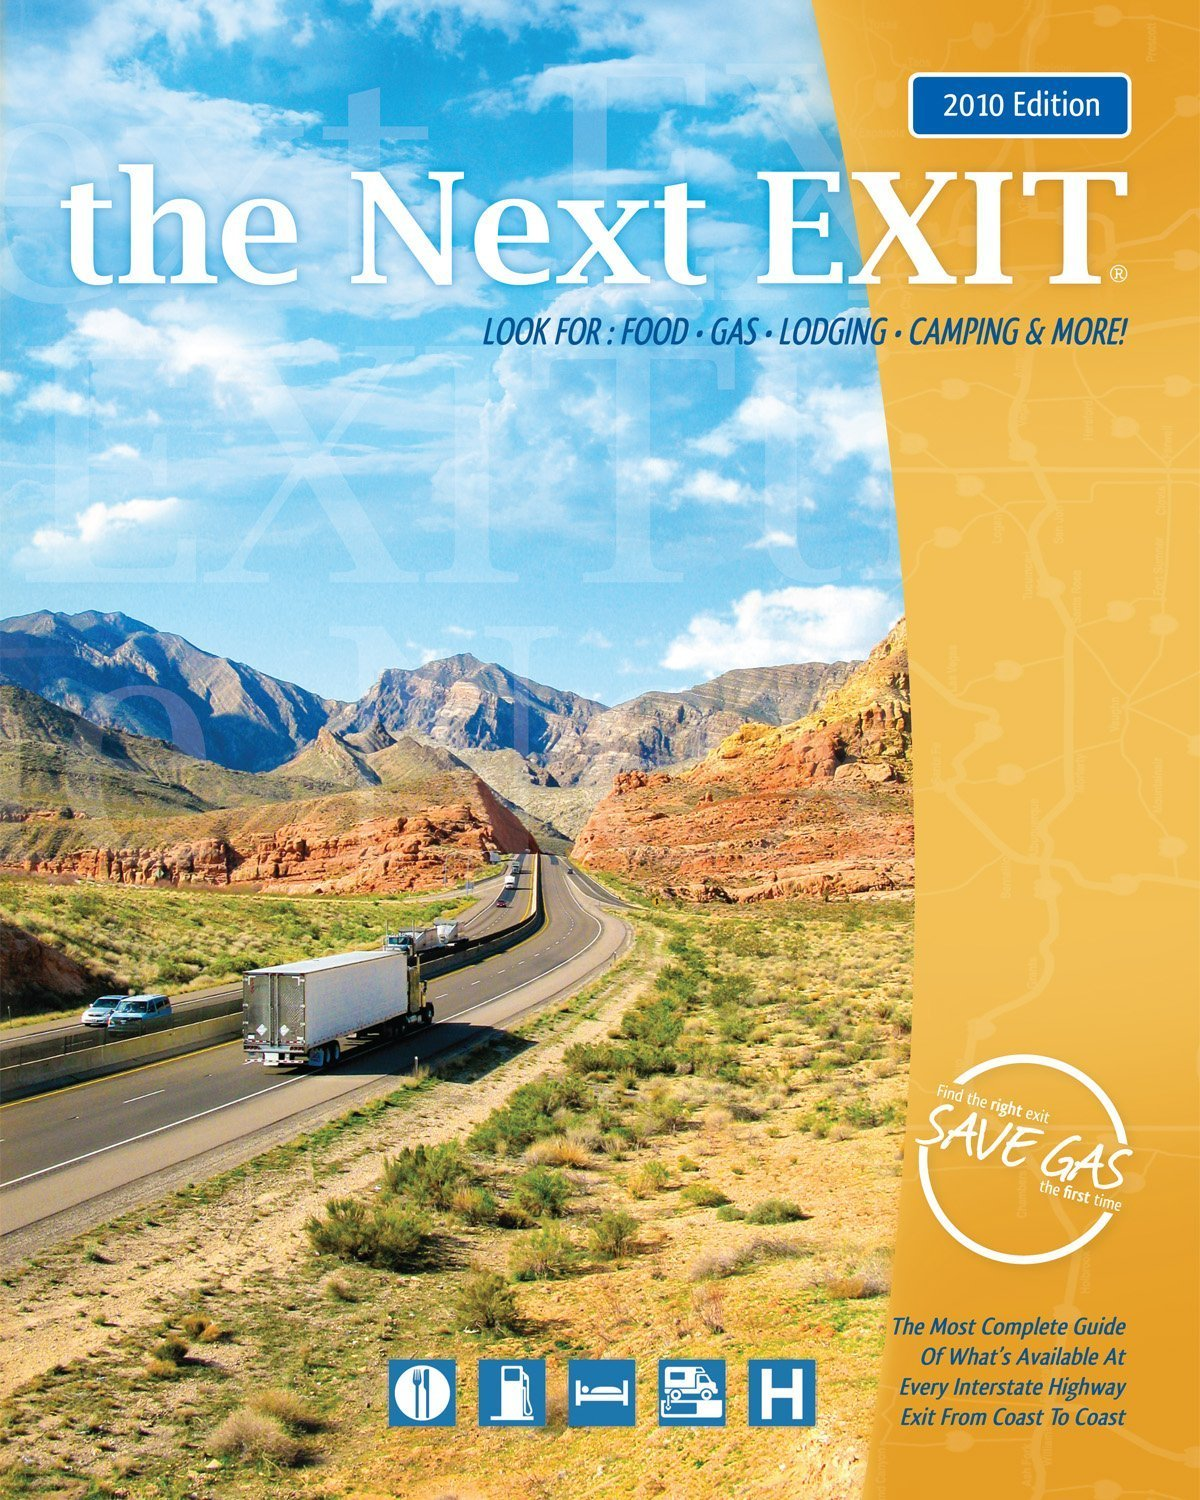 the Next EXIT (2010 edition) (Next Exit: The Most Complete Interstate Highway Guide Ever Printed) pdf epub